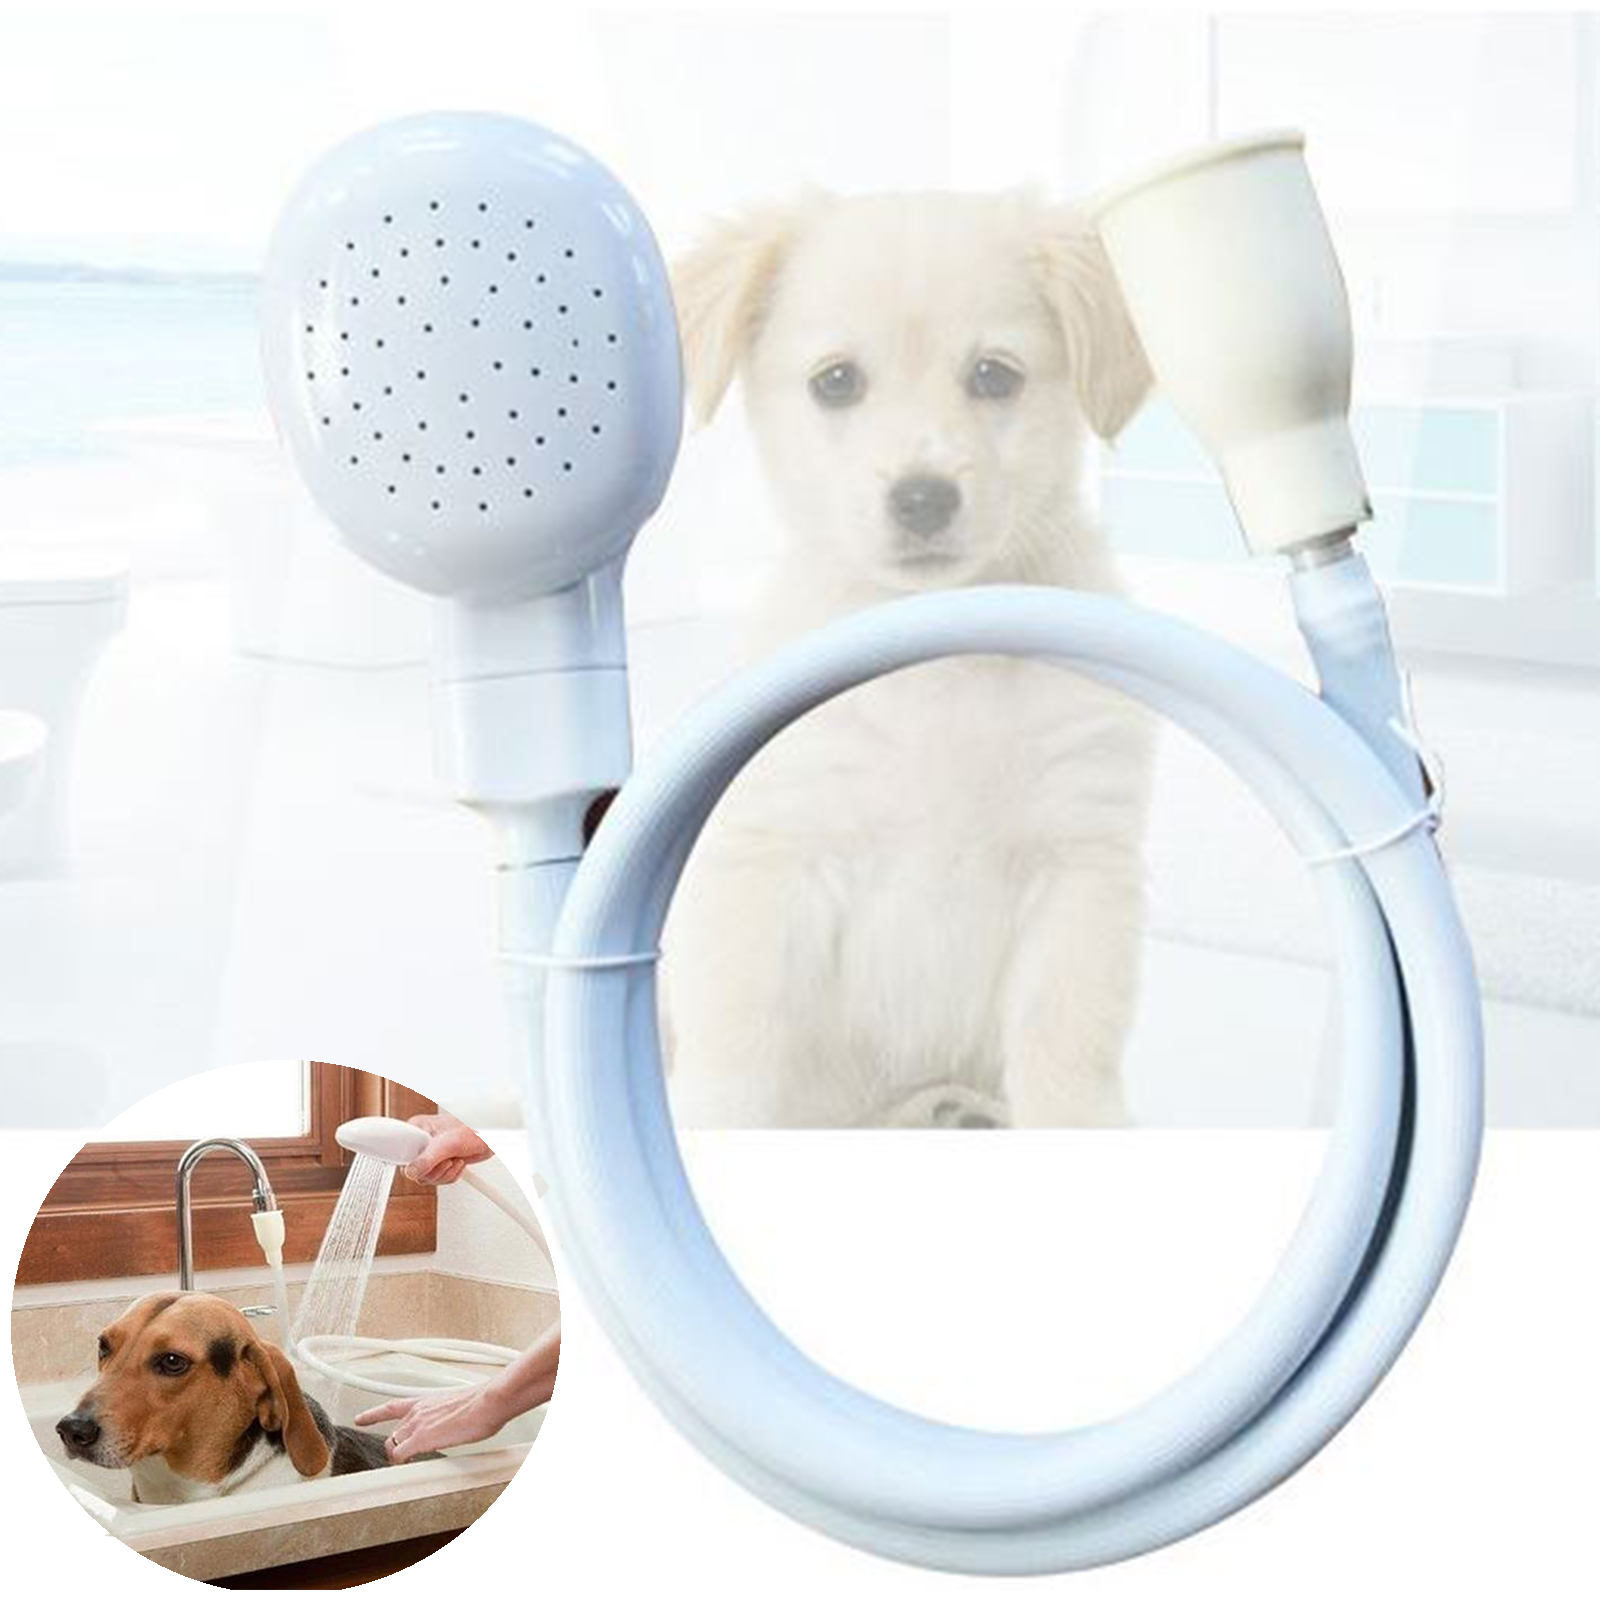 Portable Dog Pet Care Shower Spray Hose Bath Tub Sink Faucet ...